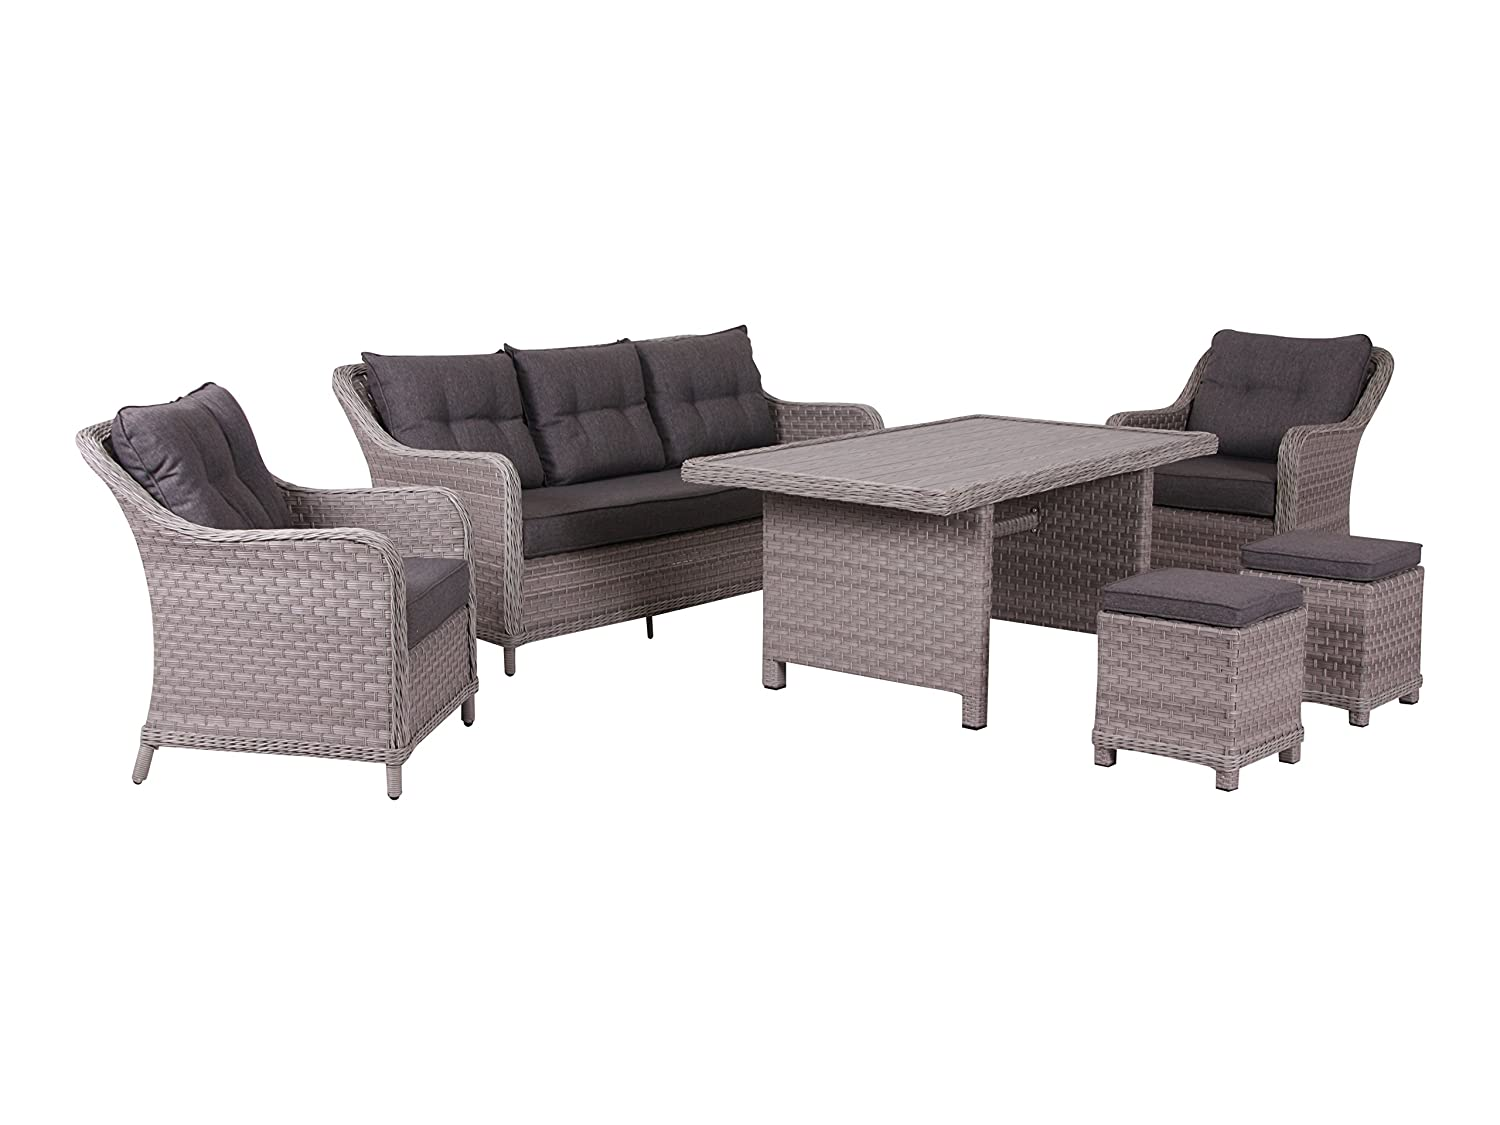 Hohe XXL Dinning Poly Rattan Lounge inkl. Kissen